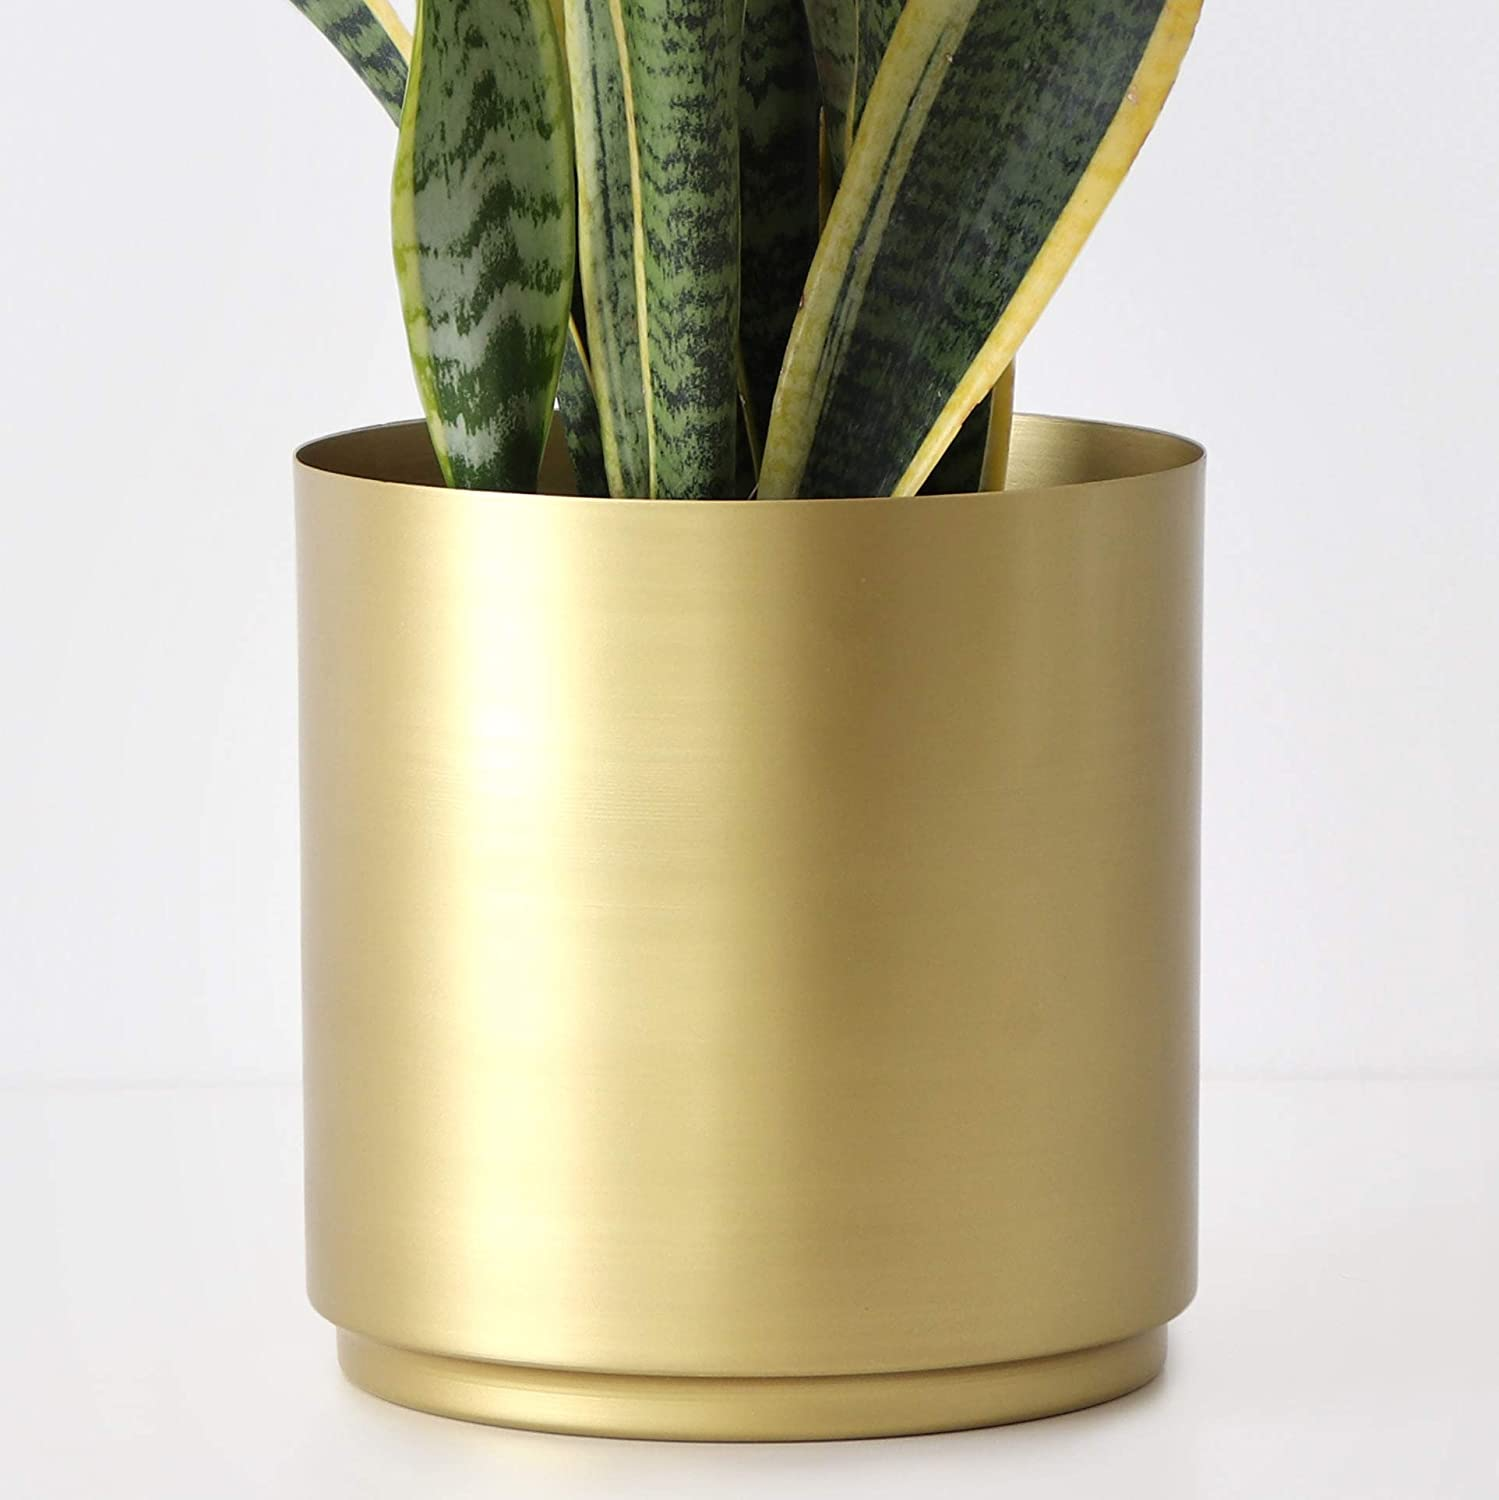 Large Brass Metal Planters Set Of Two Flower Pots Modern Gold Indoor Plant Pots 11 75 9 75 Perfect For Indoor Plants And House Plants 10 Inch Amazon Co Uk Garden Outdoors